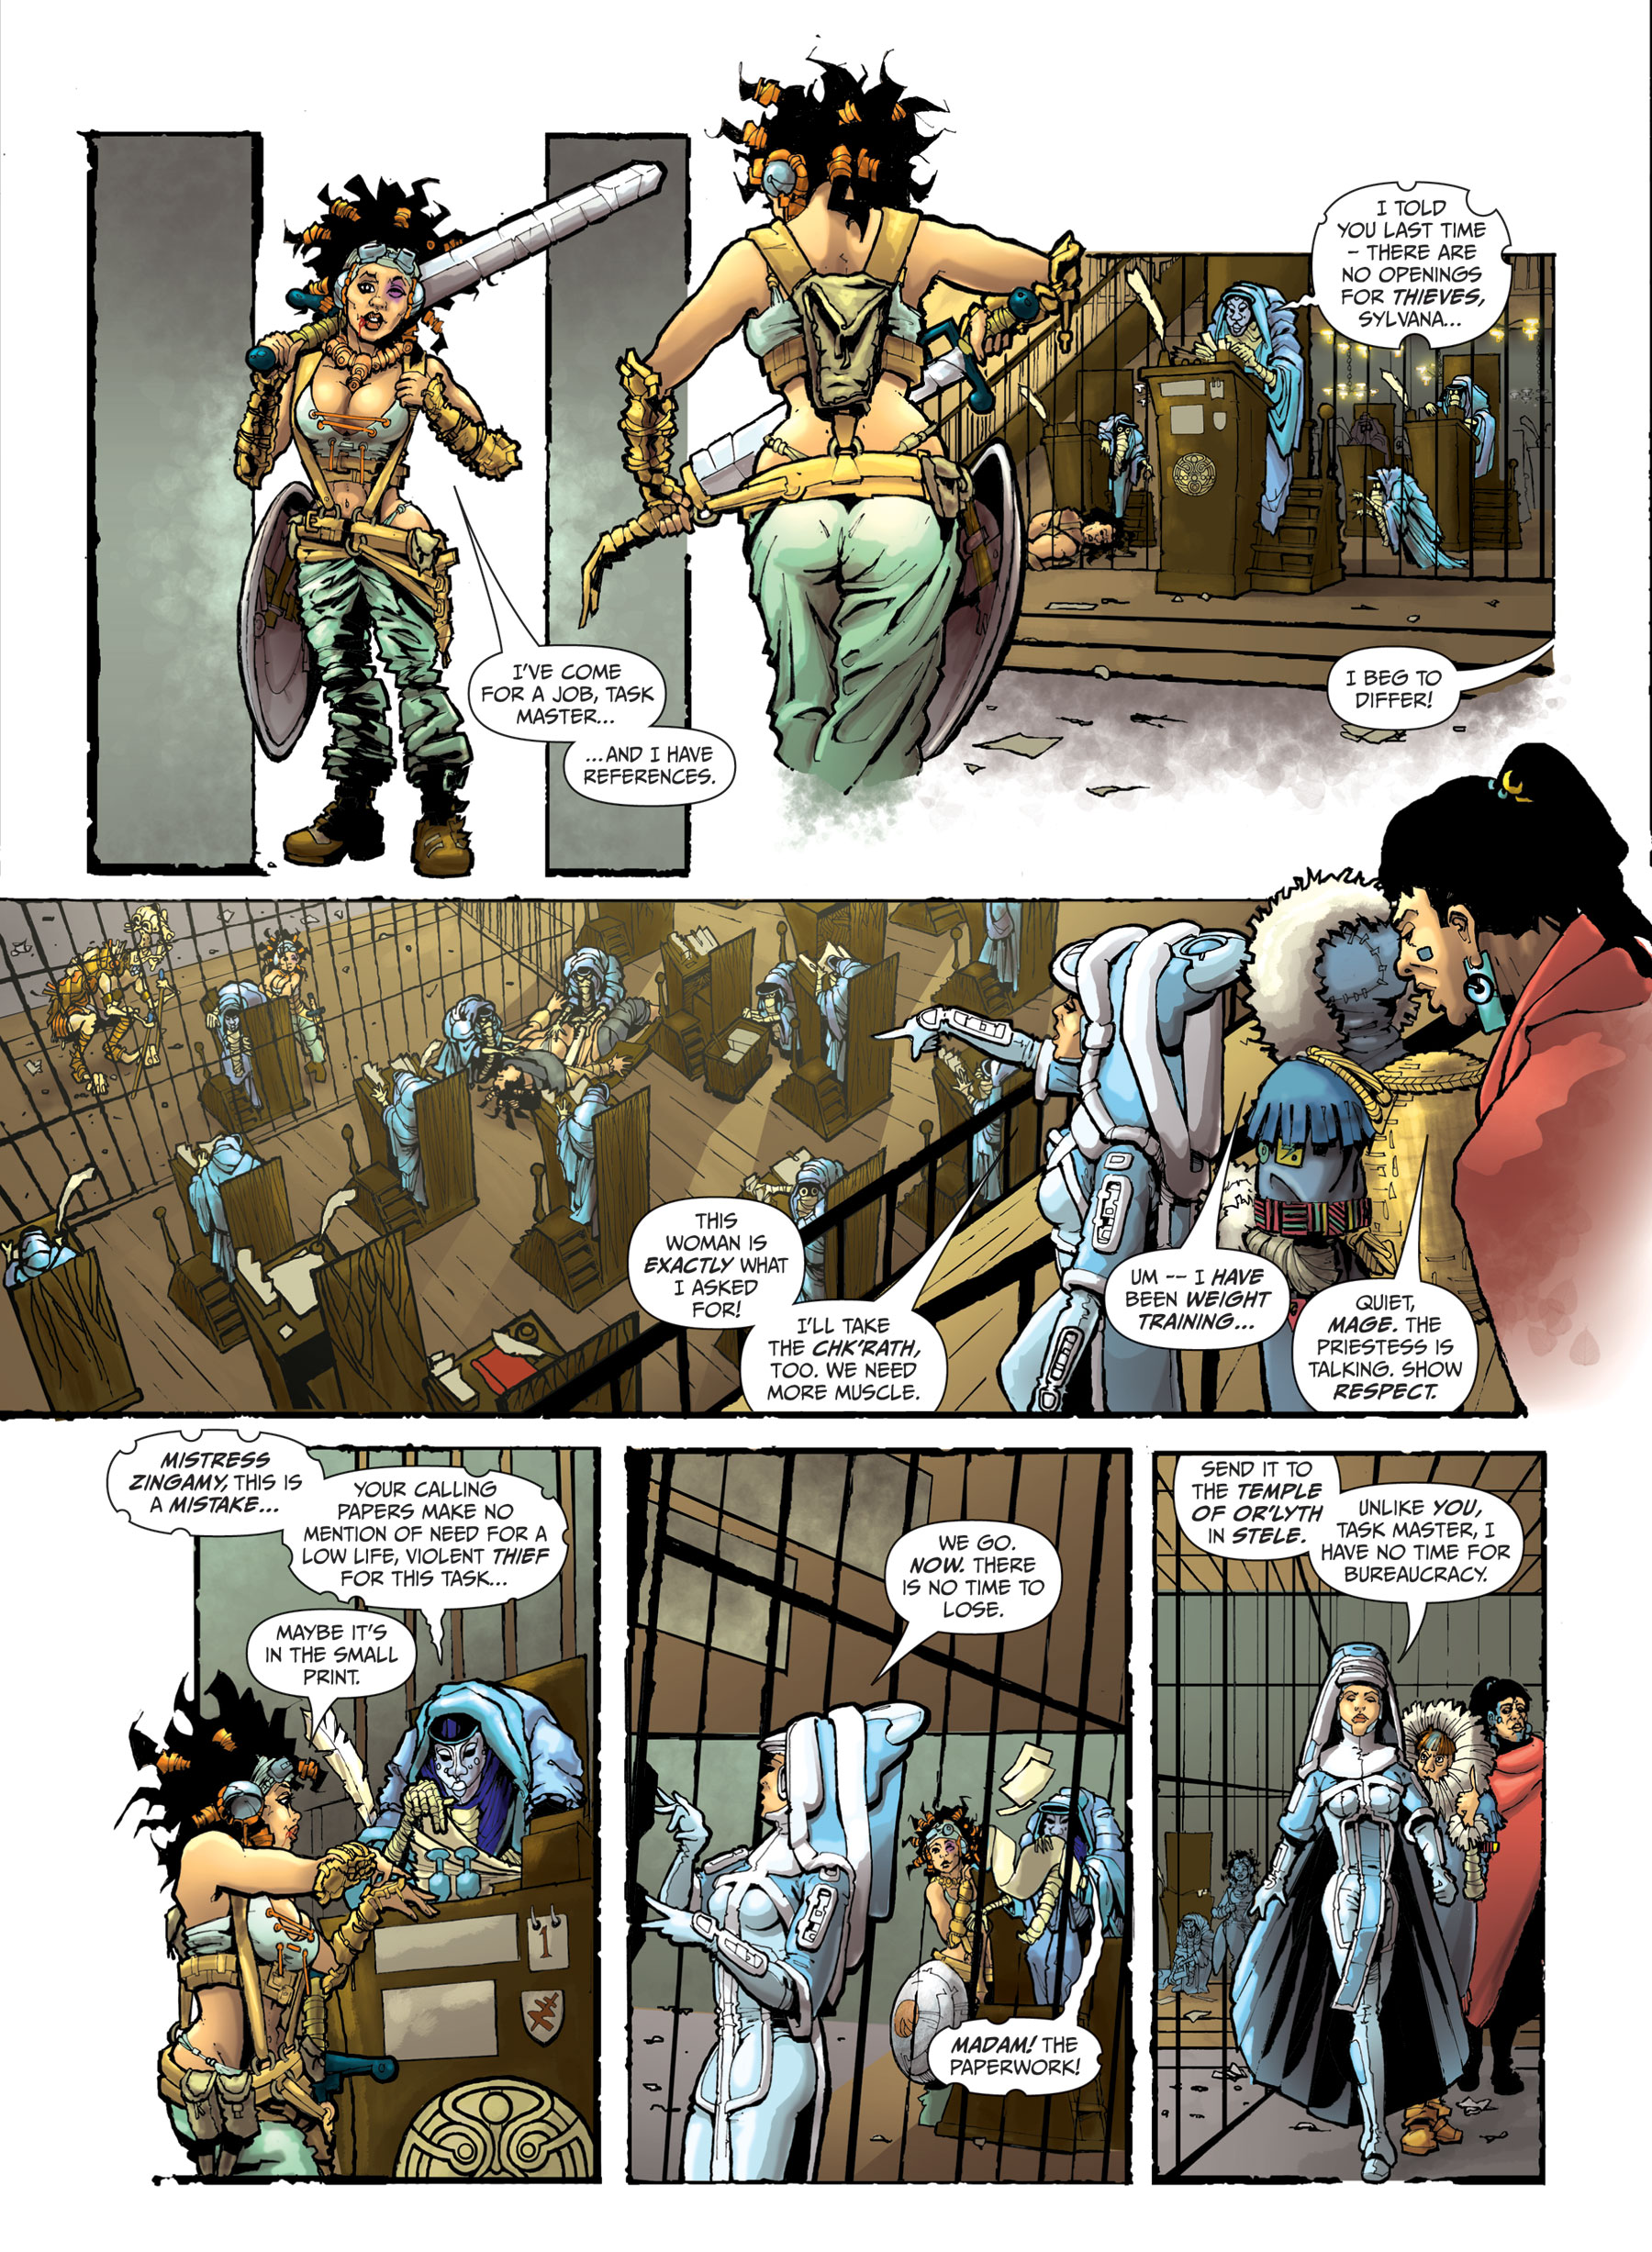 Crucible Book One - The Quest Part 1, Page 2. © John Freeman & Smuzz